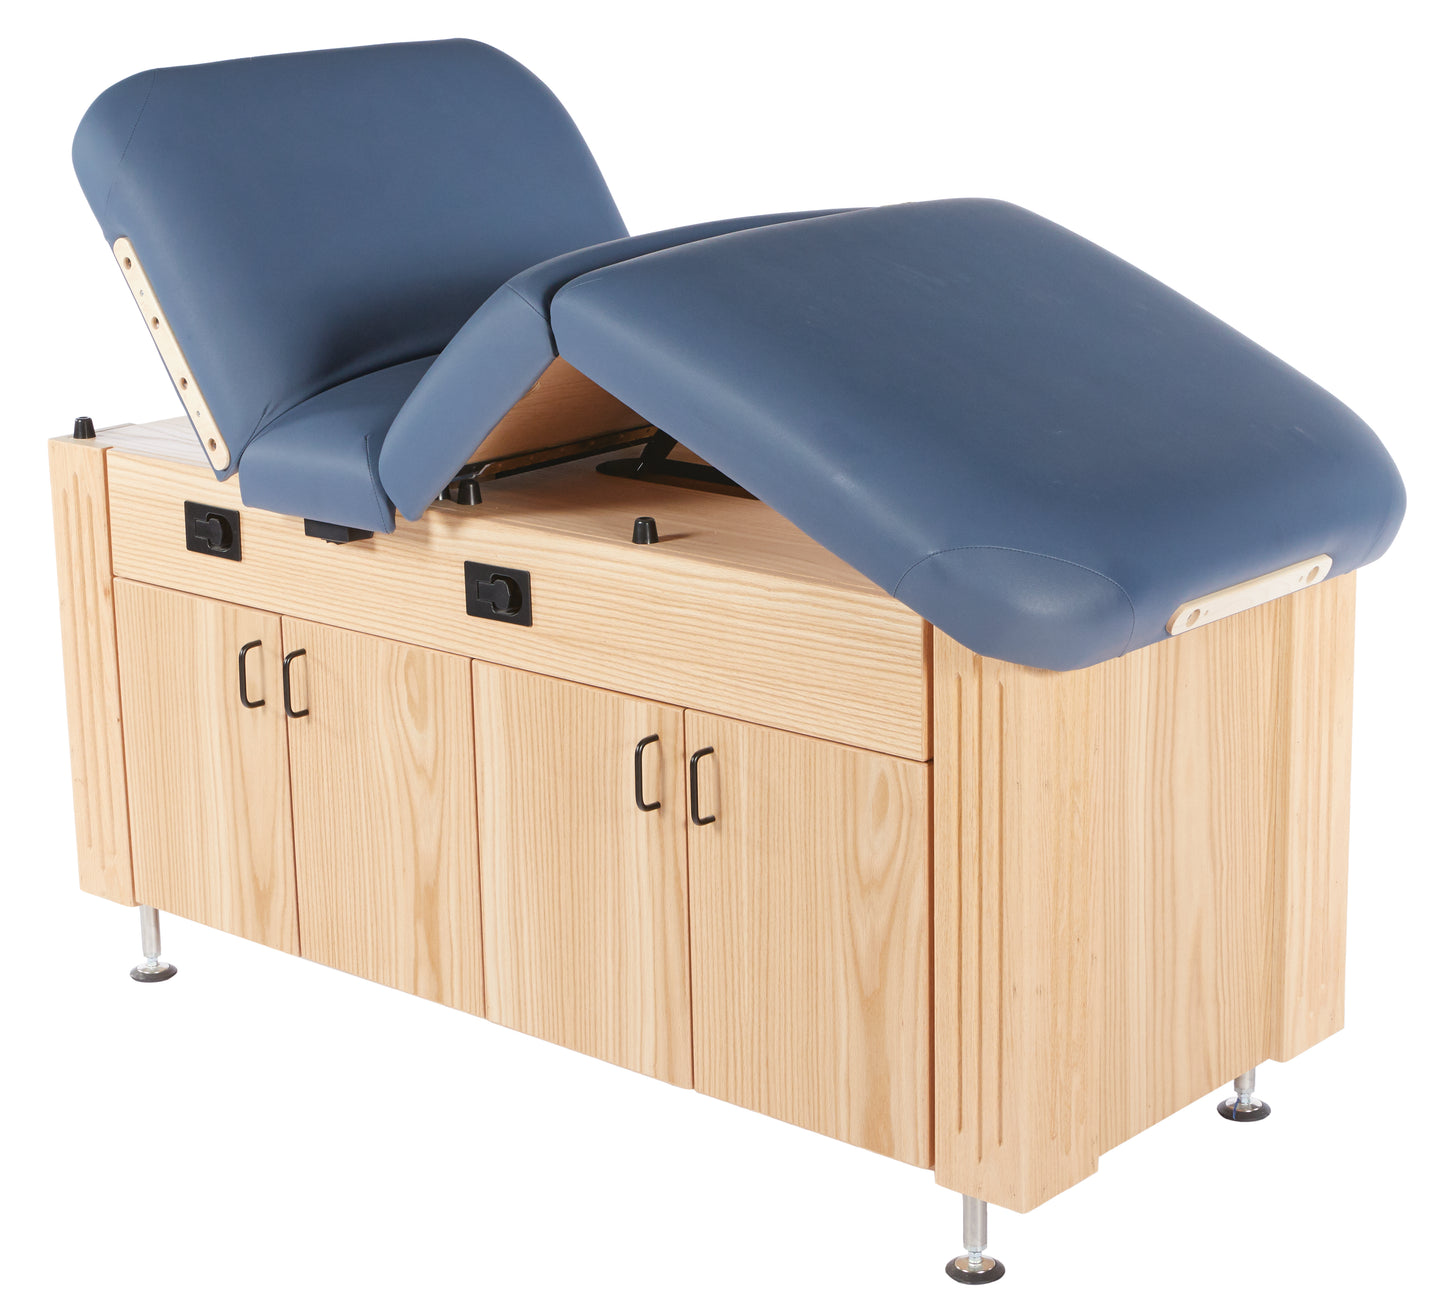 Signature Series by Custom Craftworks - M100 Deluxe Electric Lift Spa/Massage Table - Superb Massage Tables